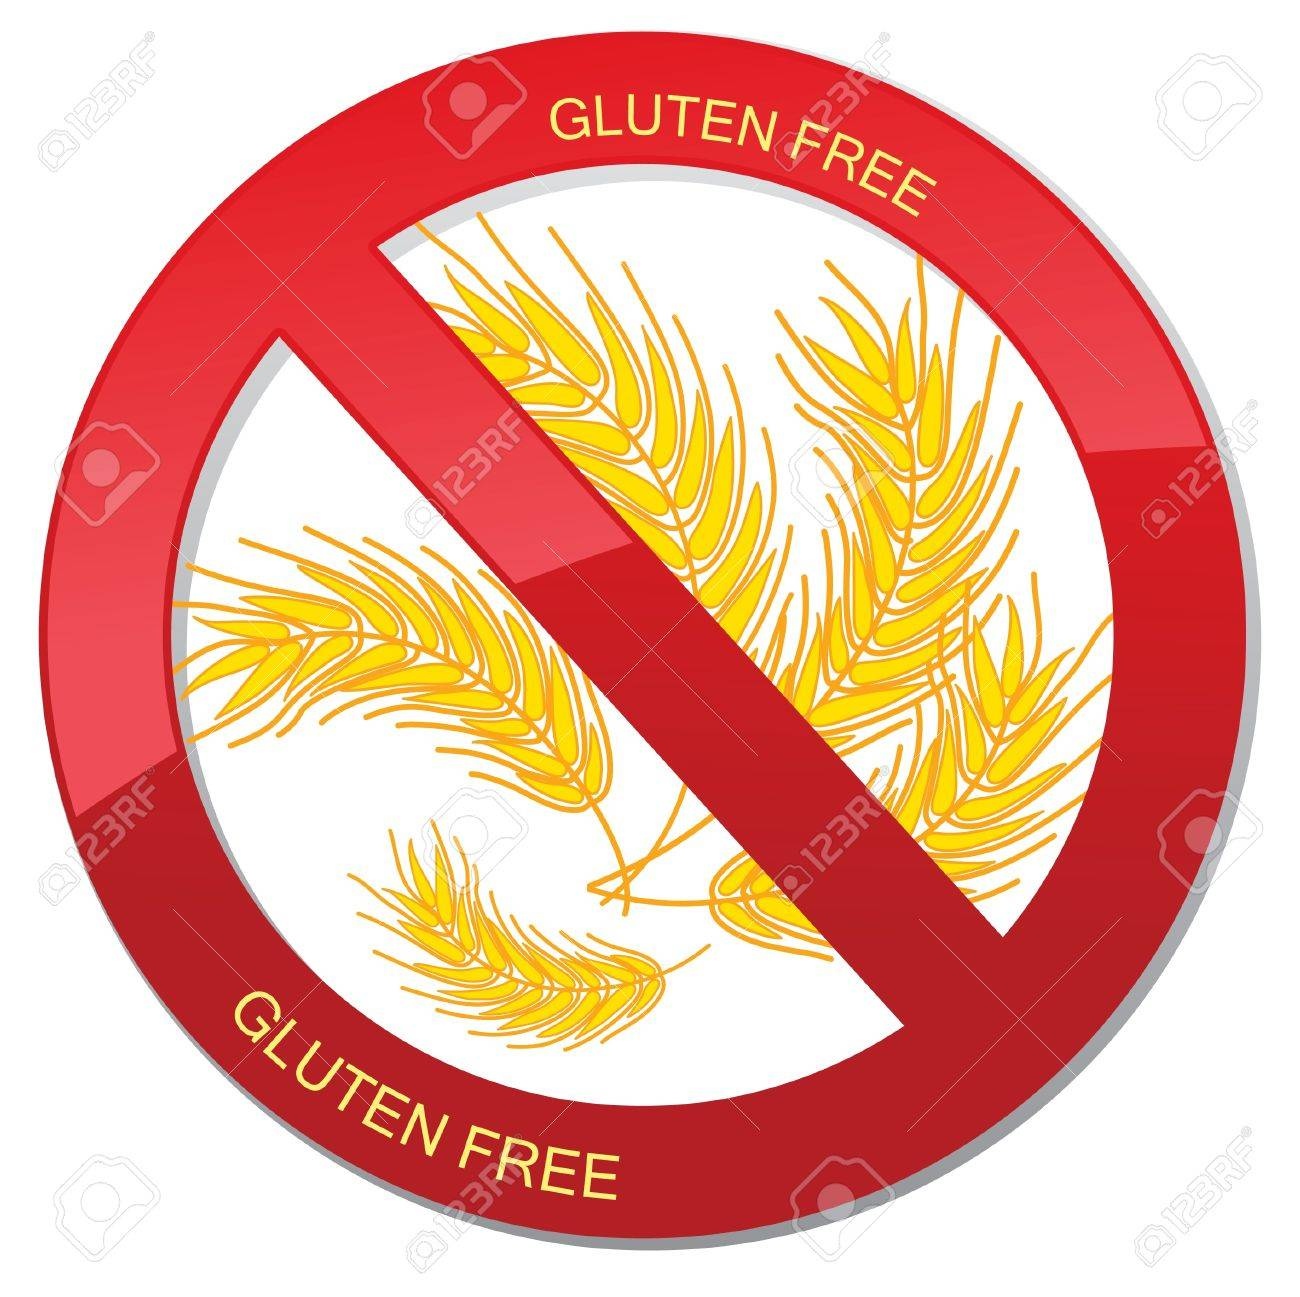 No bread - gluten free icon  realistic illustration  Fat danger sign Stock Vector - 18394399